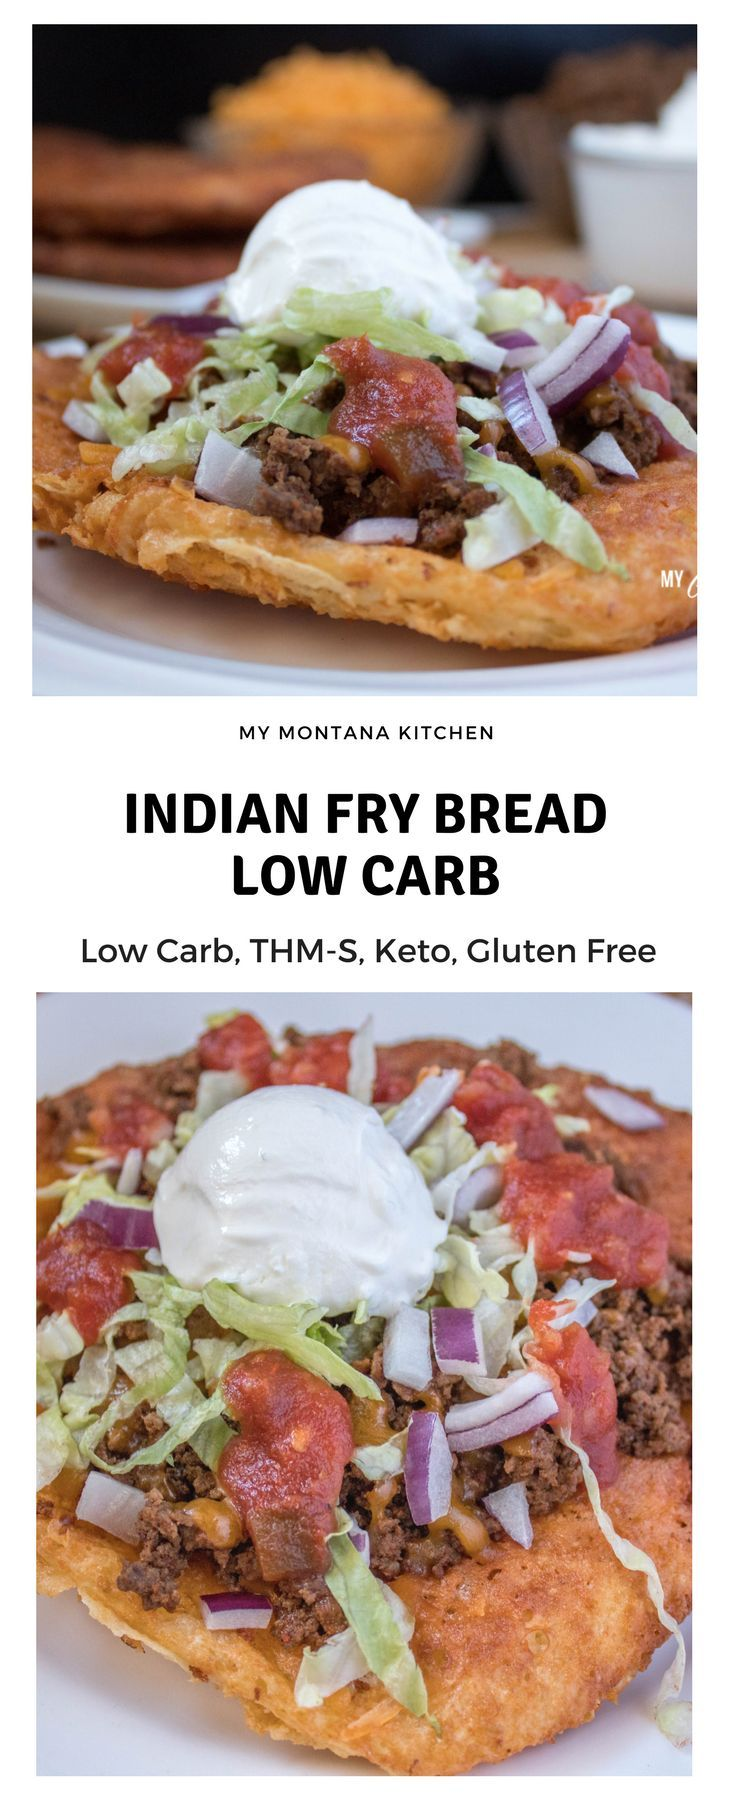 Indian Fry Bread (Low Carb)